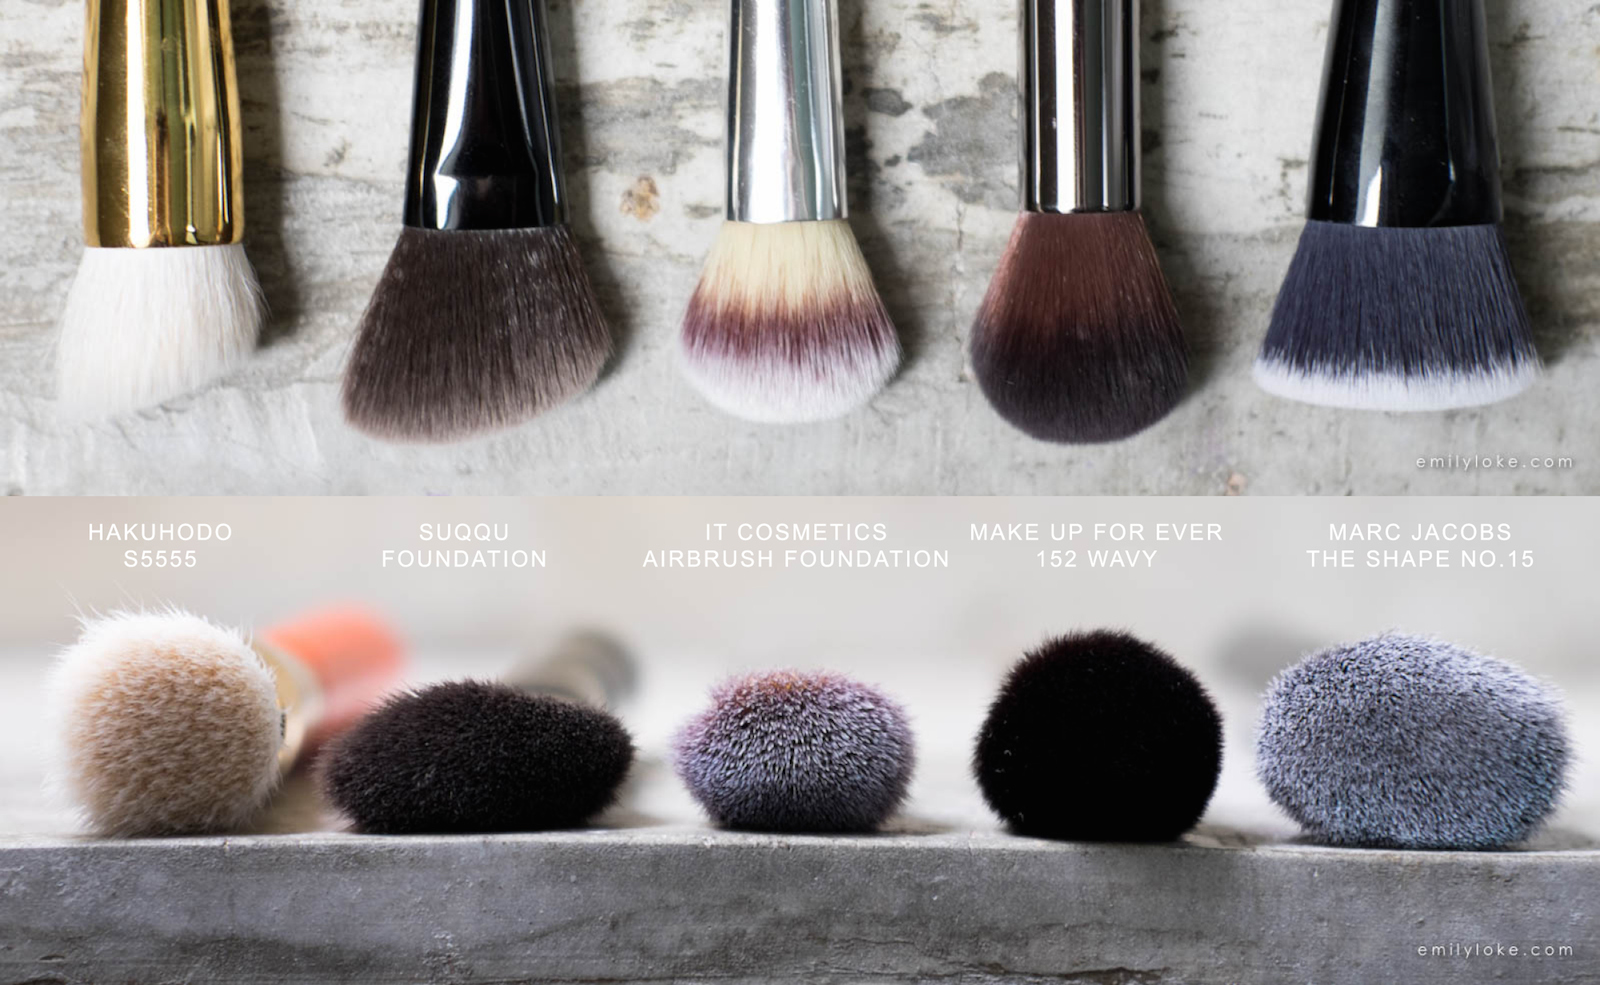 suqqu foundation brush comparison